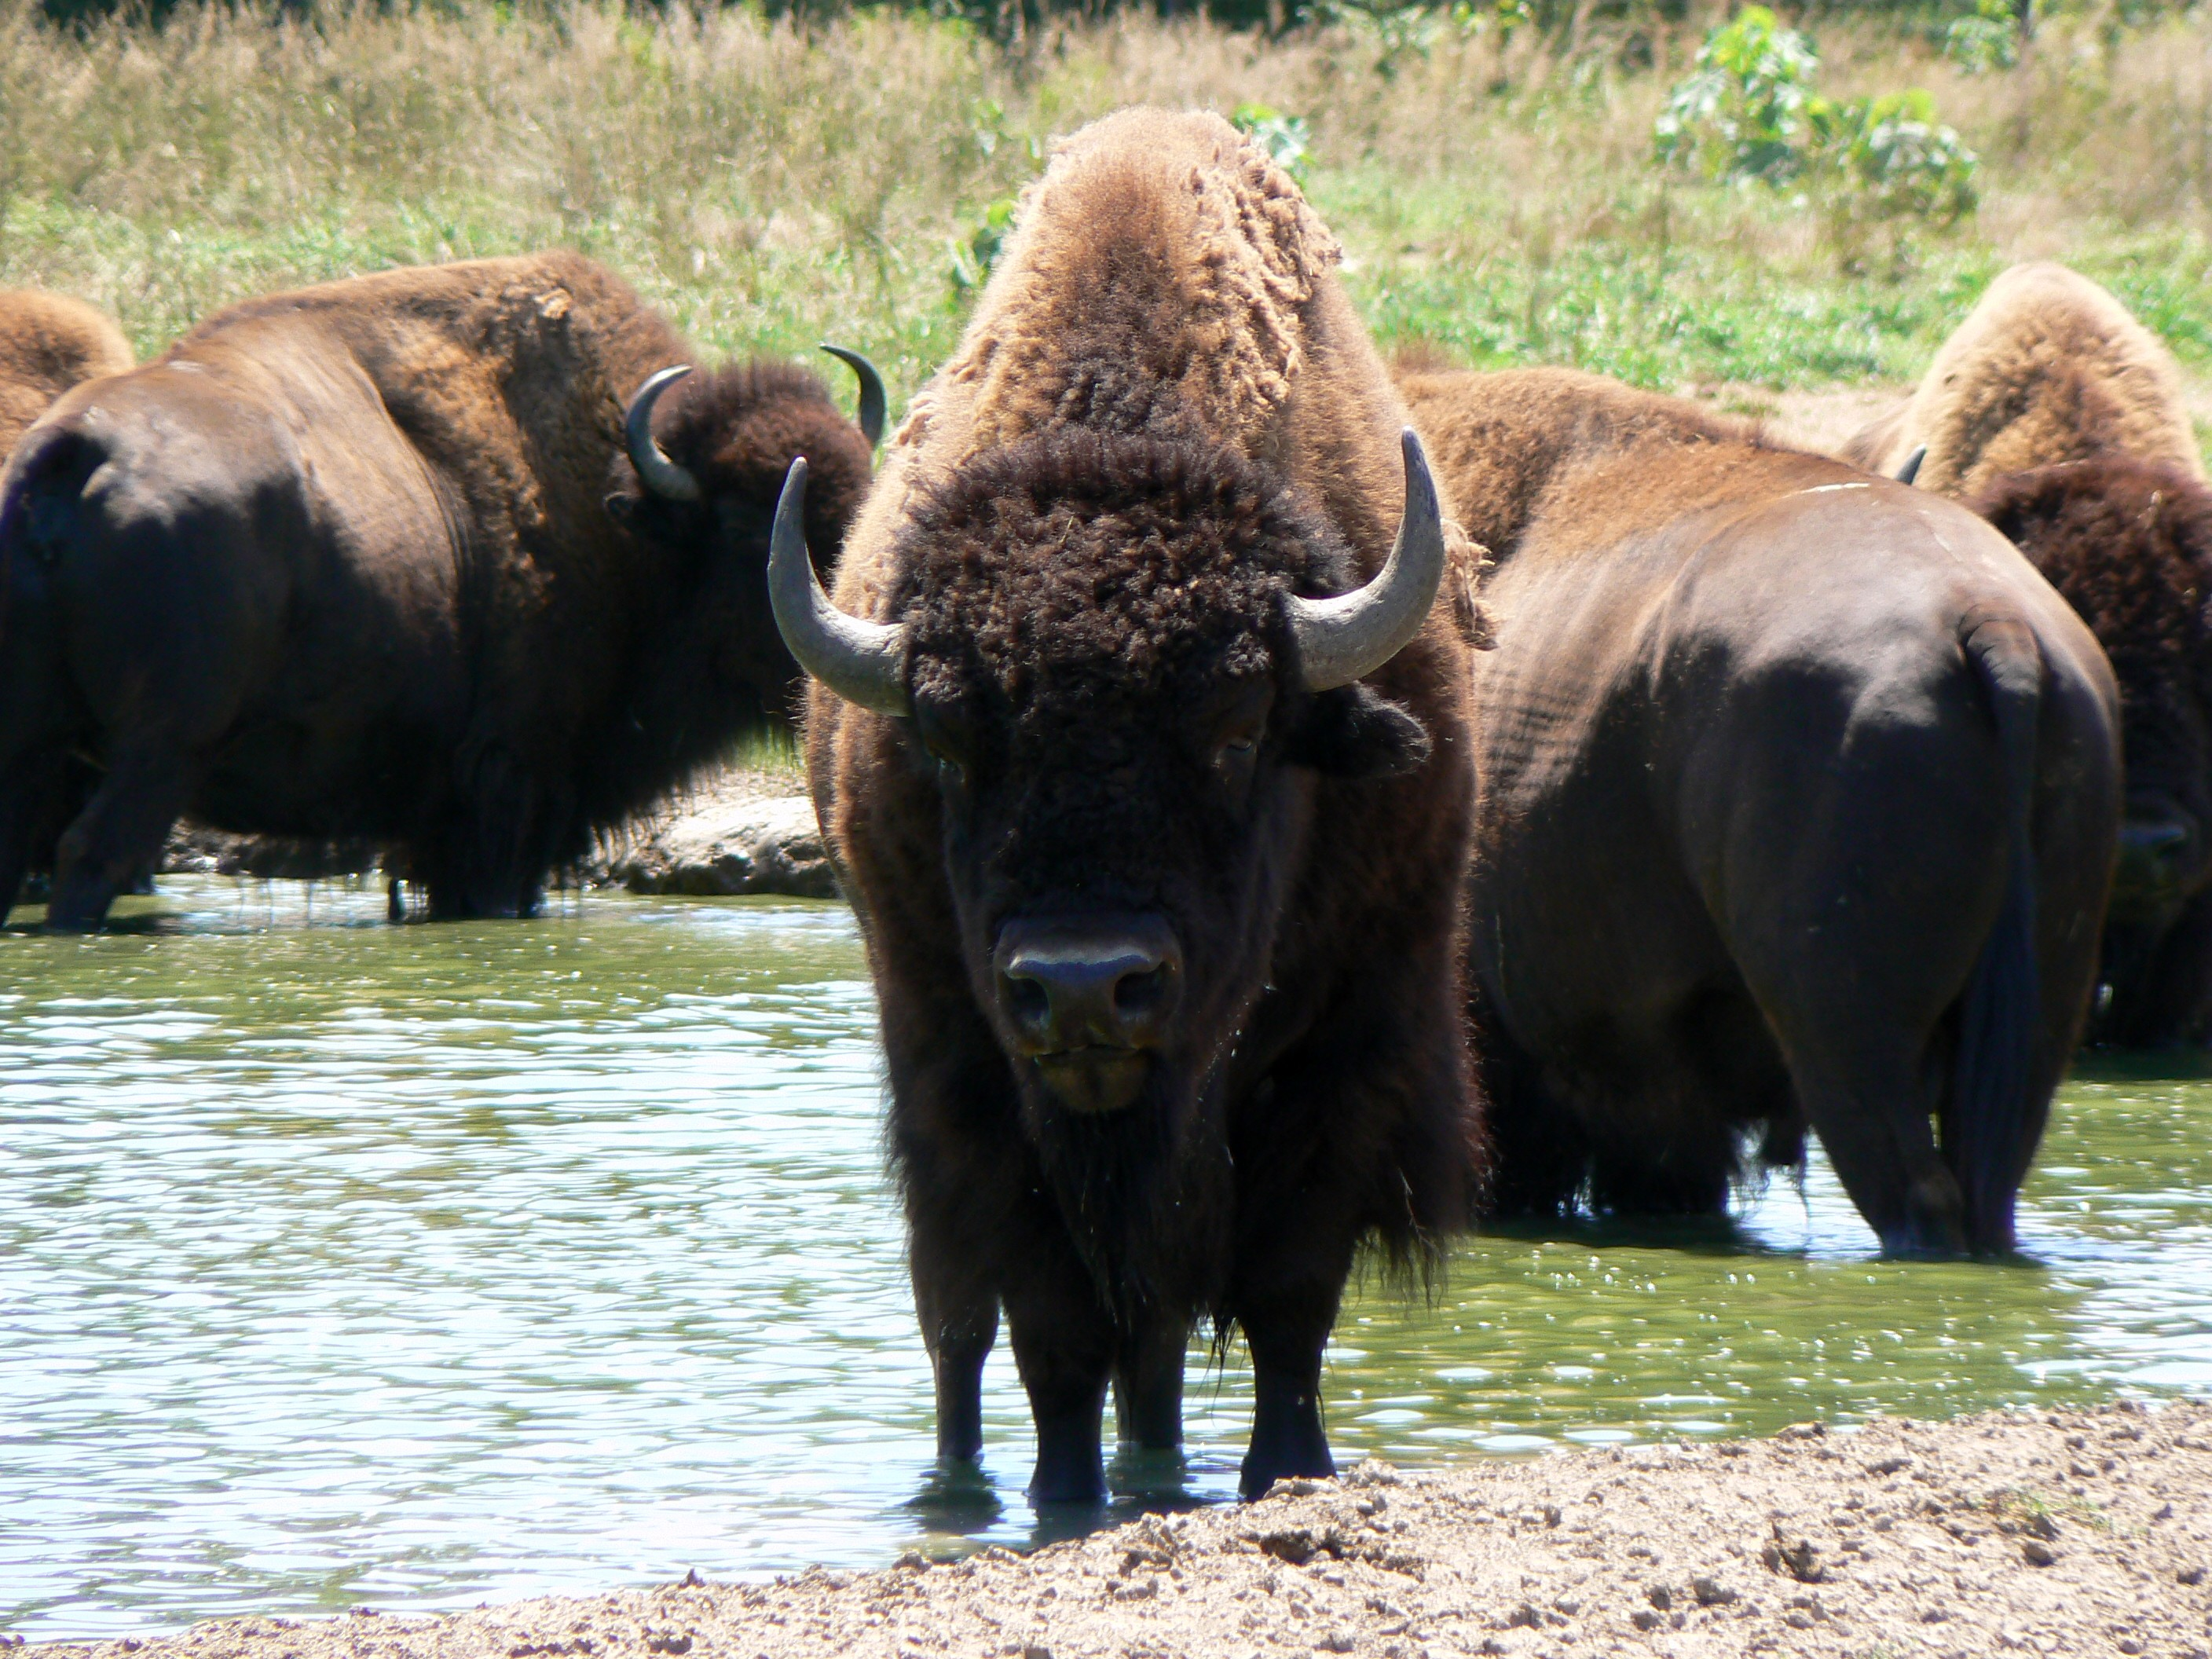 http://upload.wikimedia.org/wikipedia/commons/5/51/American_Bison_with_friends.jpg